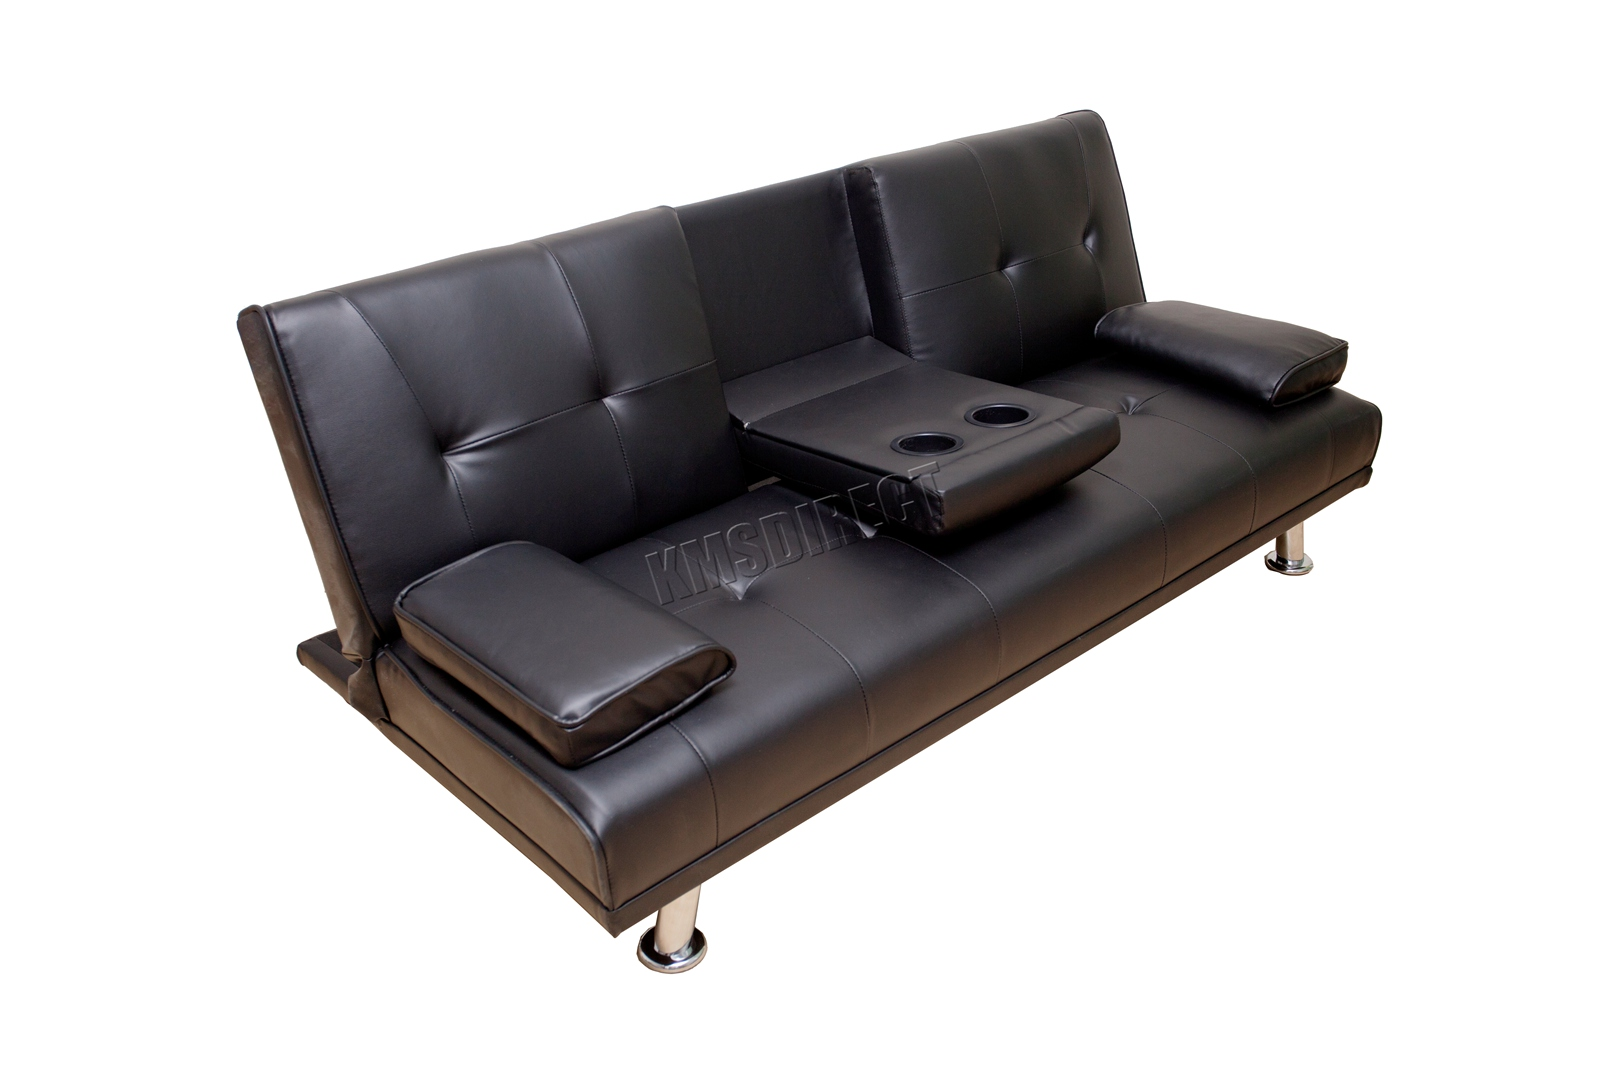 WestWood-Faux-Leather-Manhattan-Sofa-Bed-recliner-3-Seater-Modern-Luxury-Design thumbnail 15